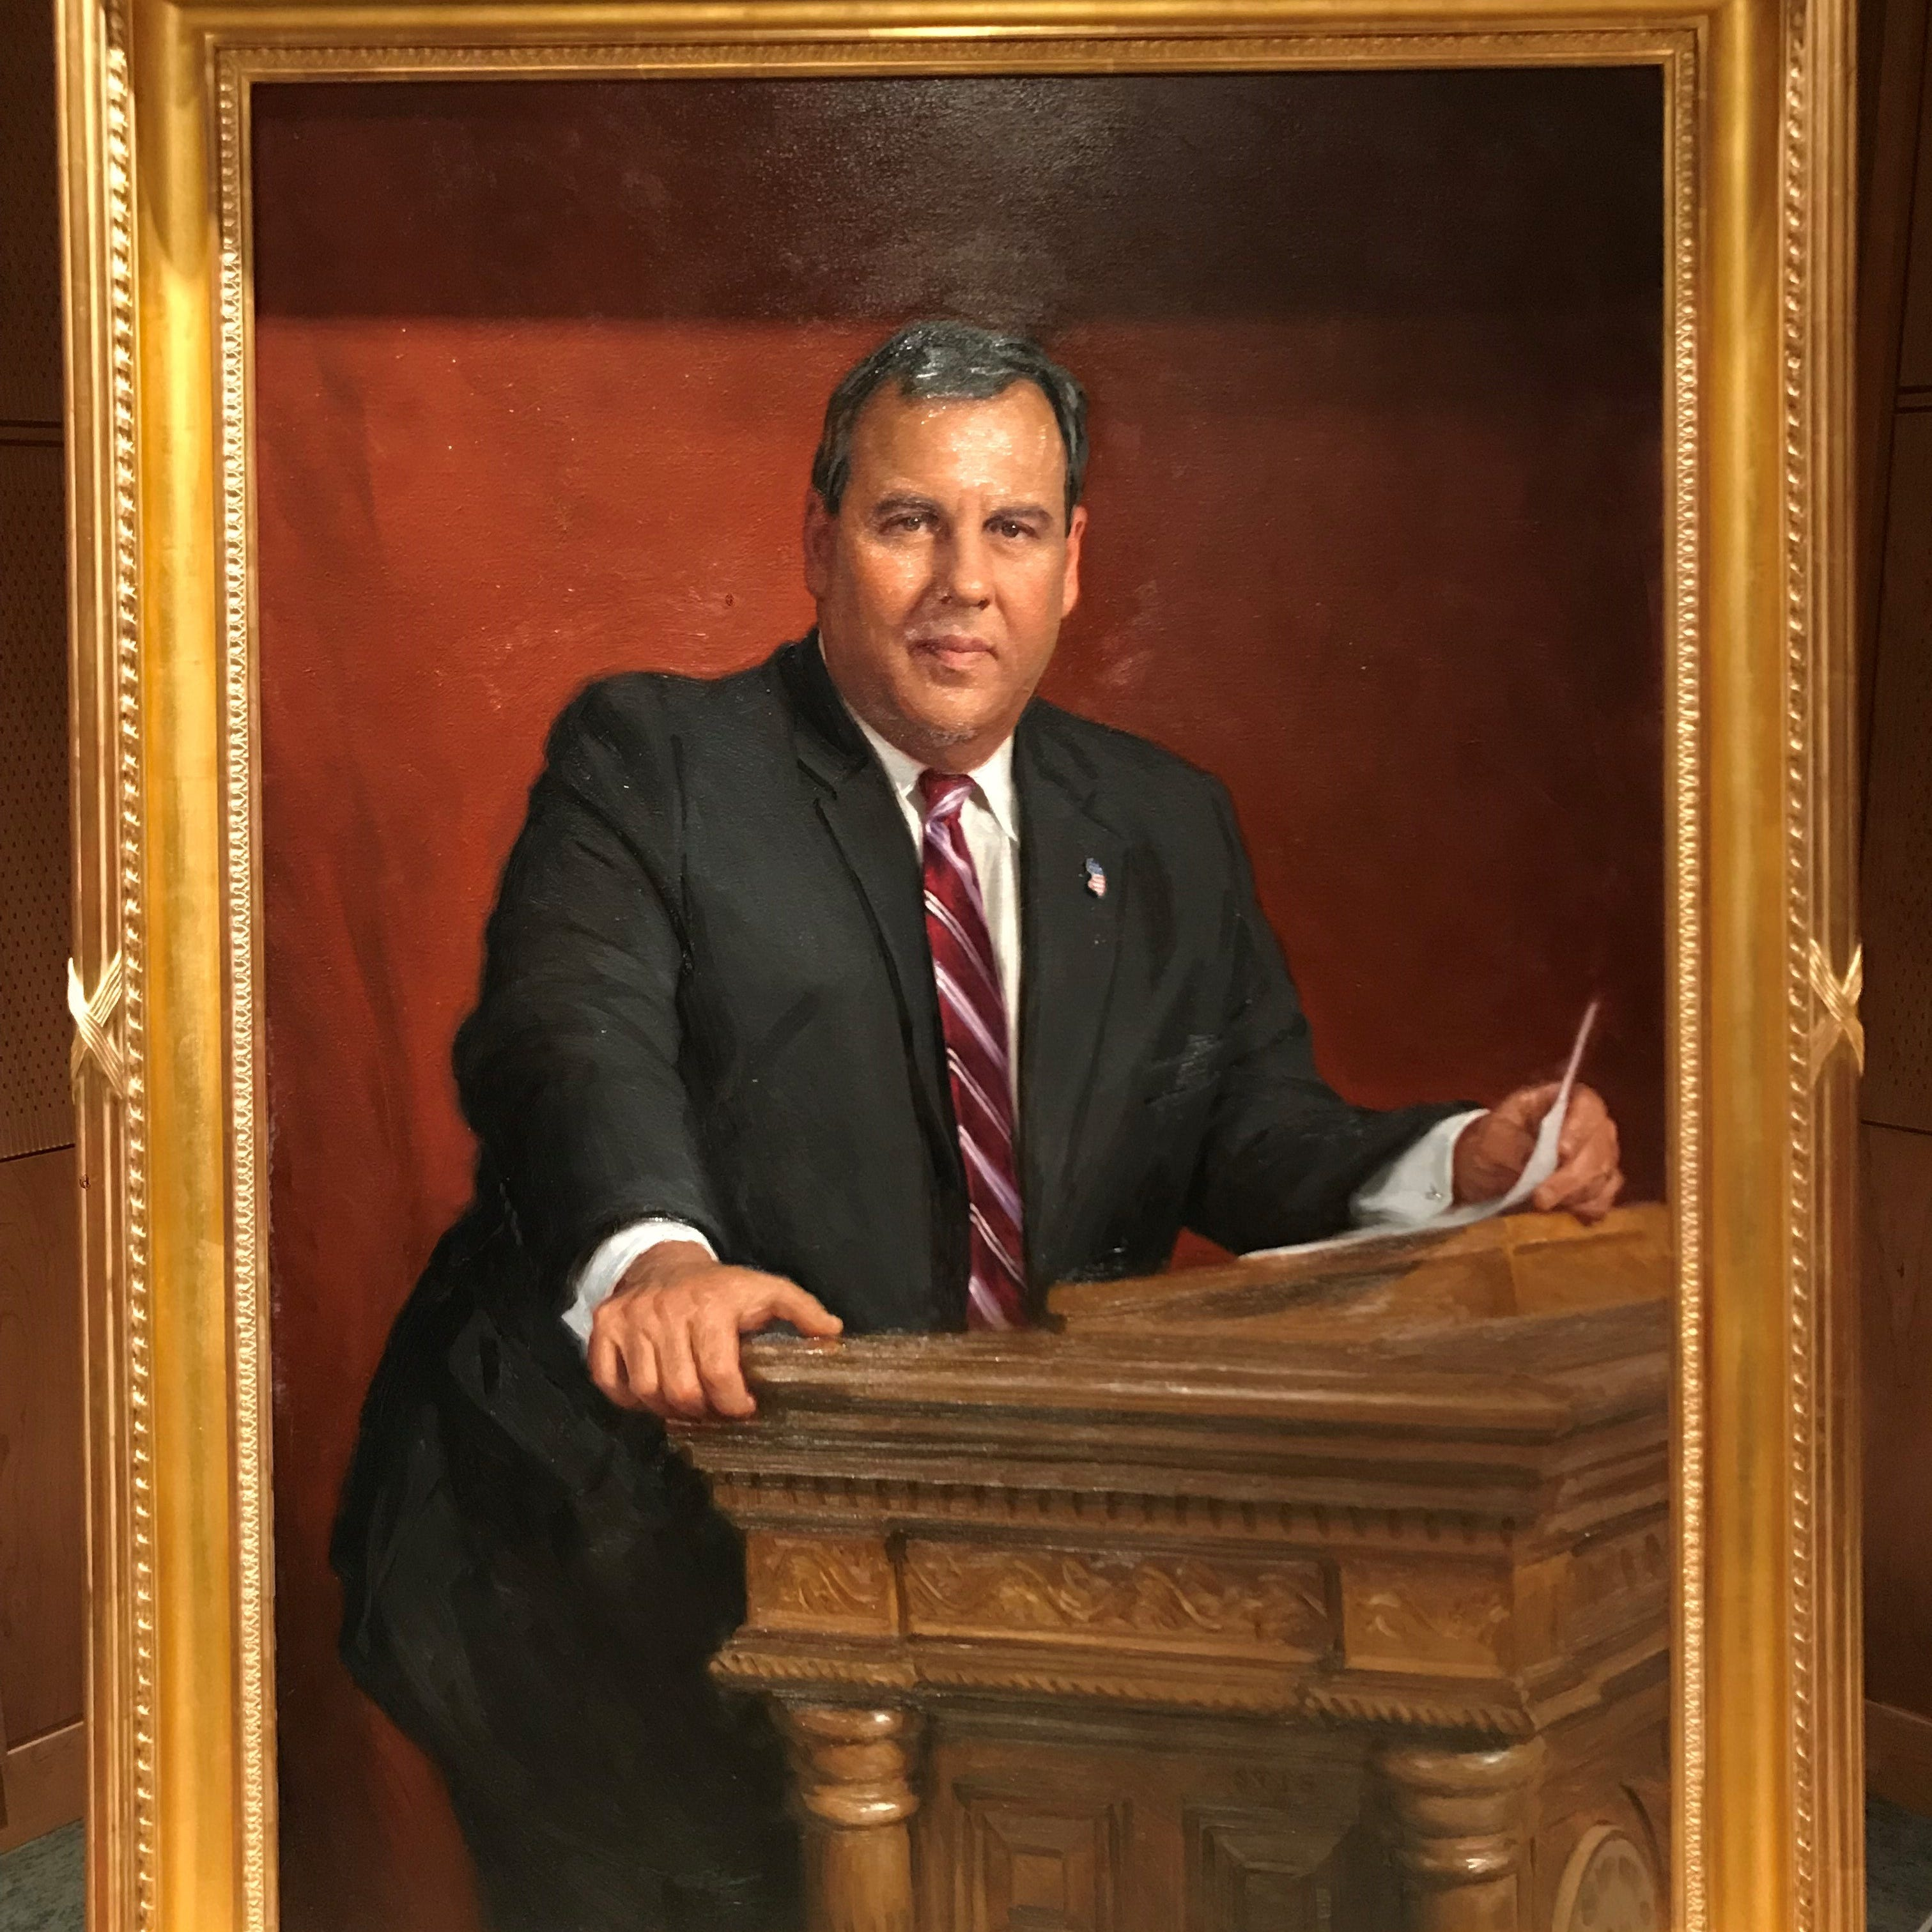 Chris Christie's official NJ portrait, most expensive ever, depicts man behind the podium